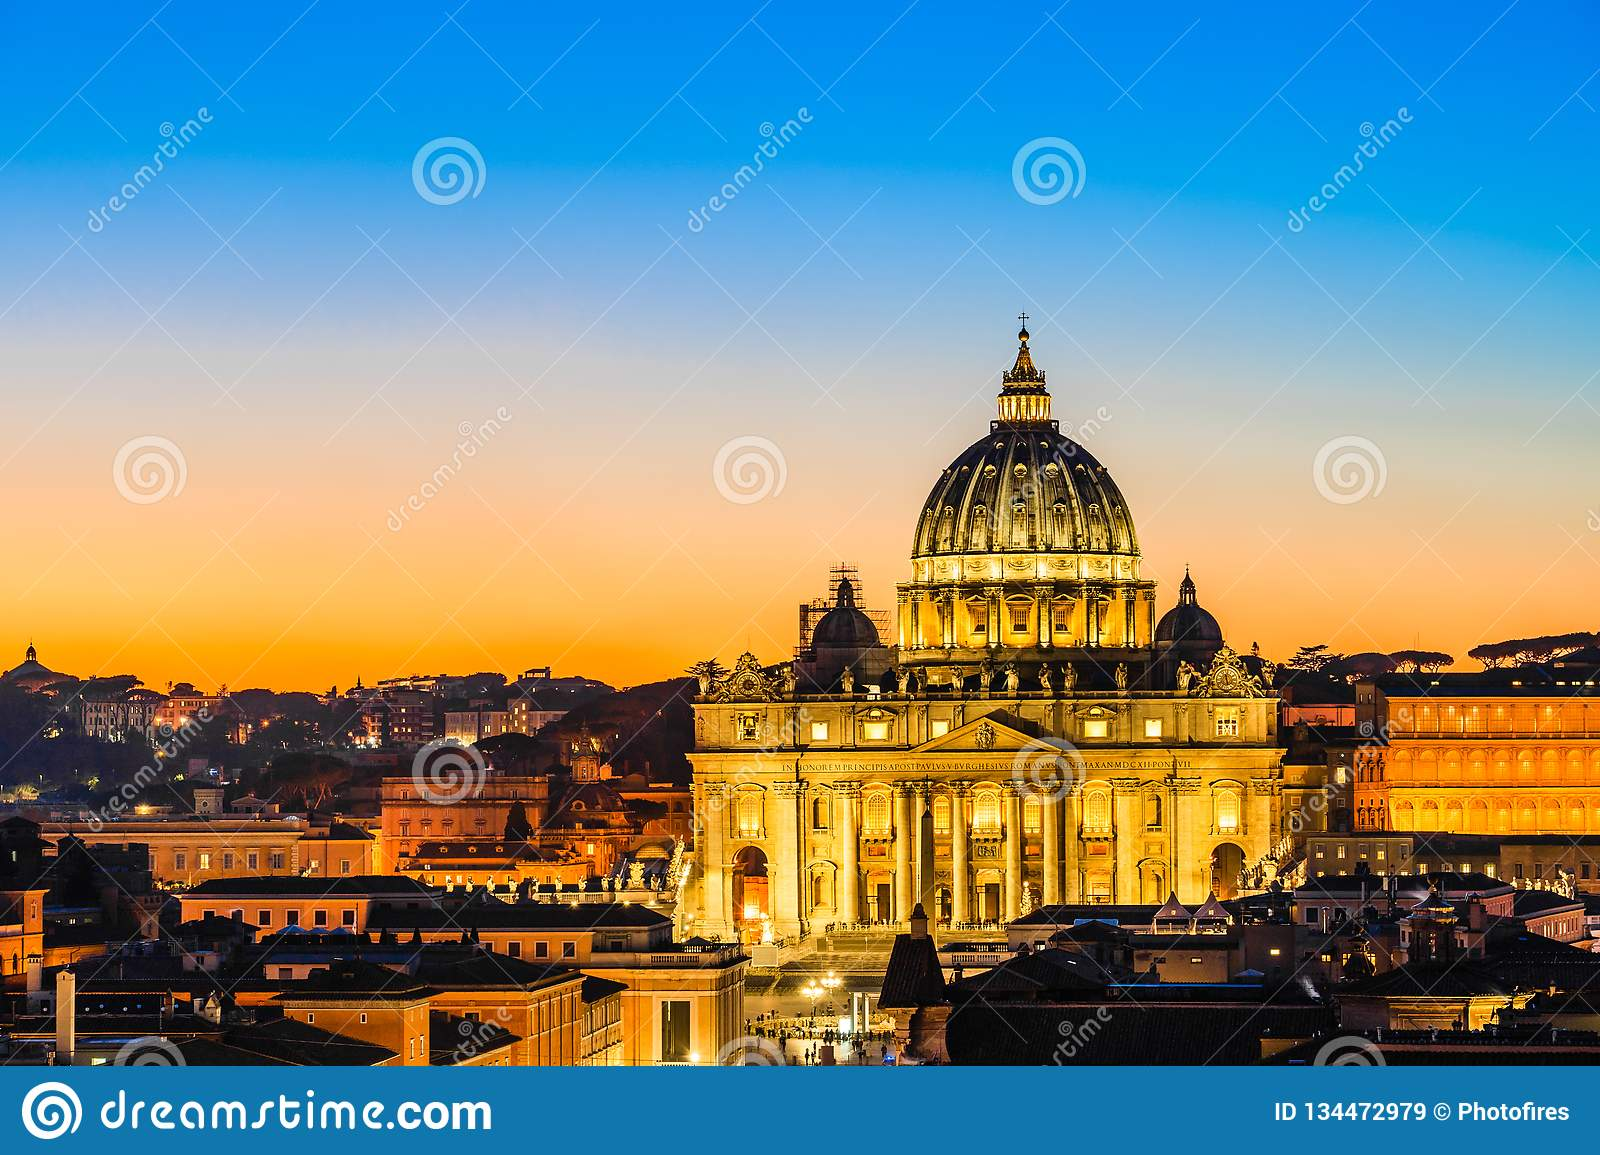 Night view of St. Peter's Basilica in Vatican City, Rome, Italy